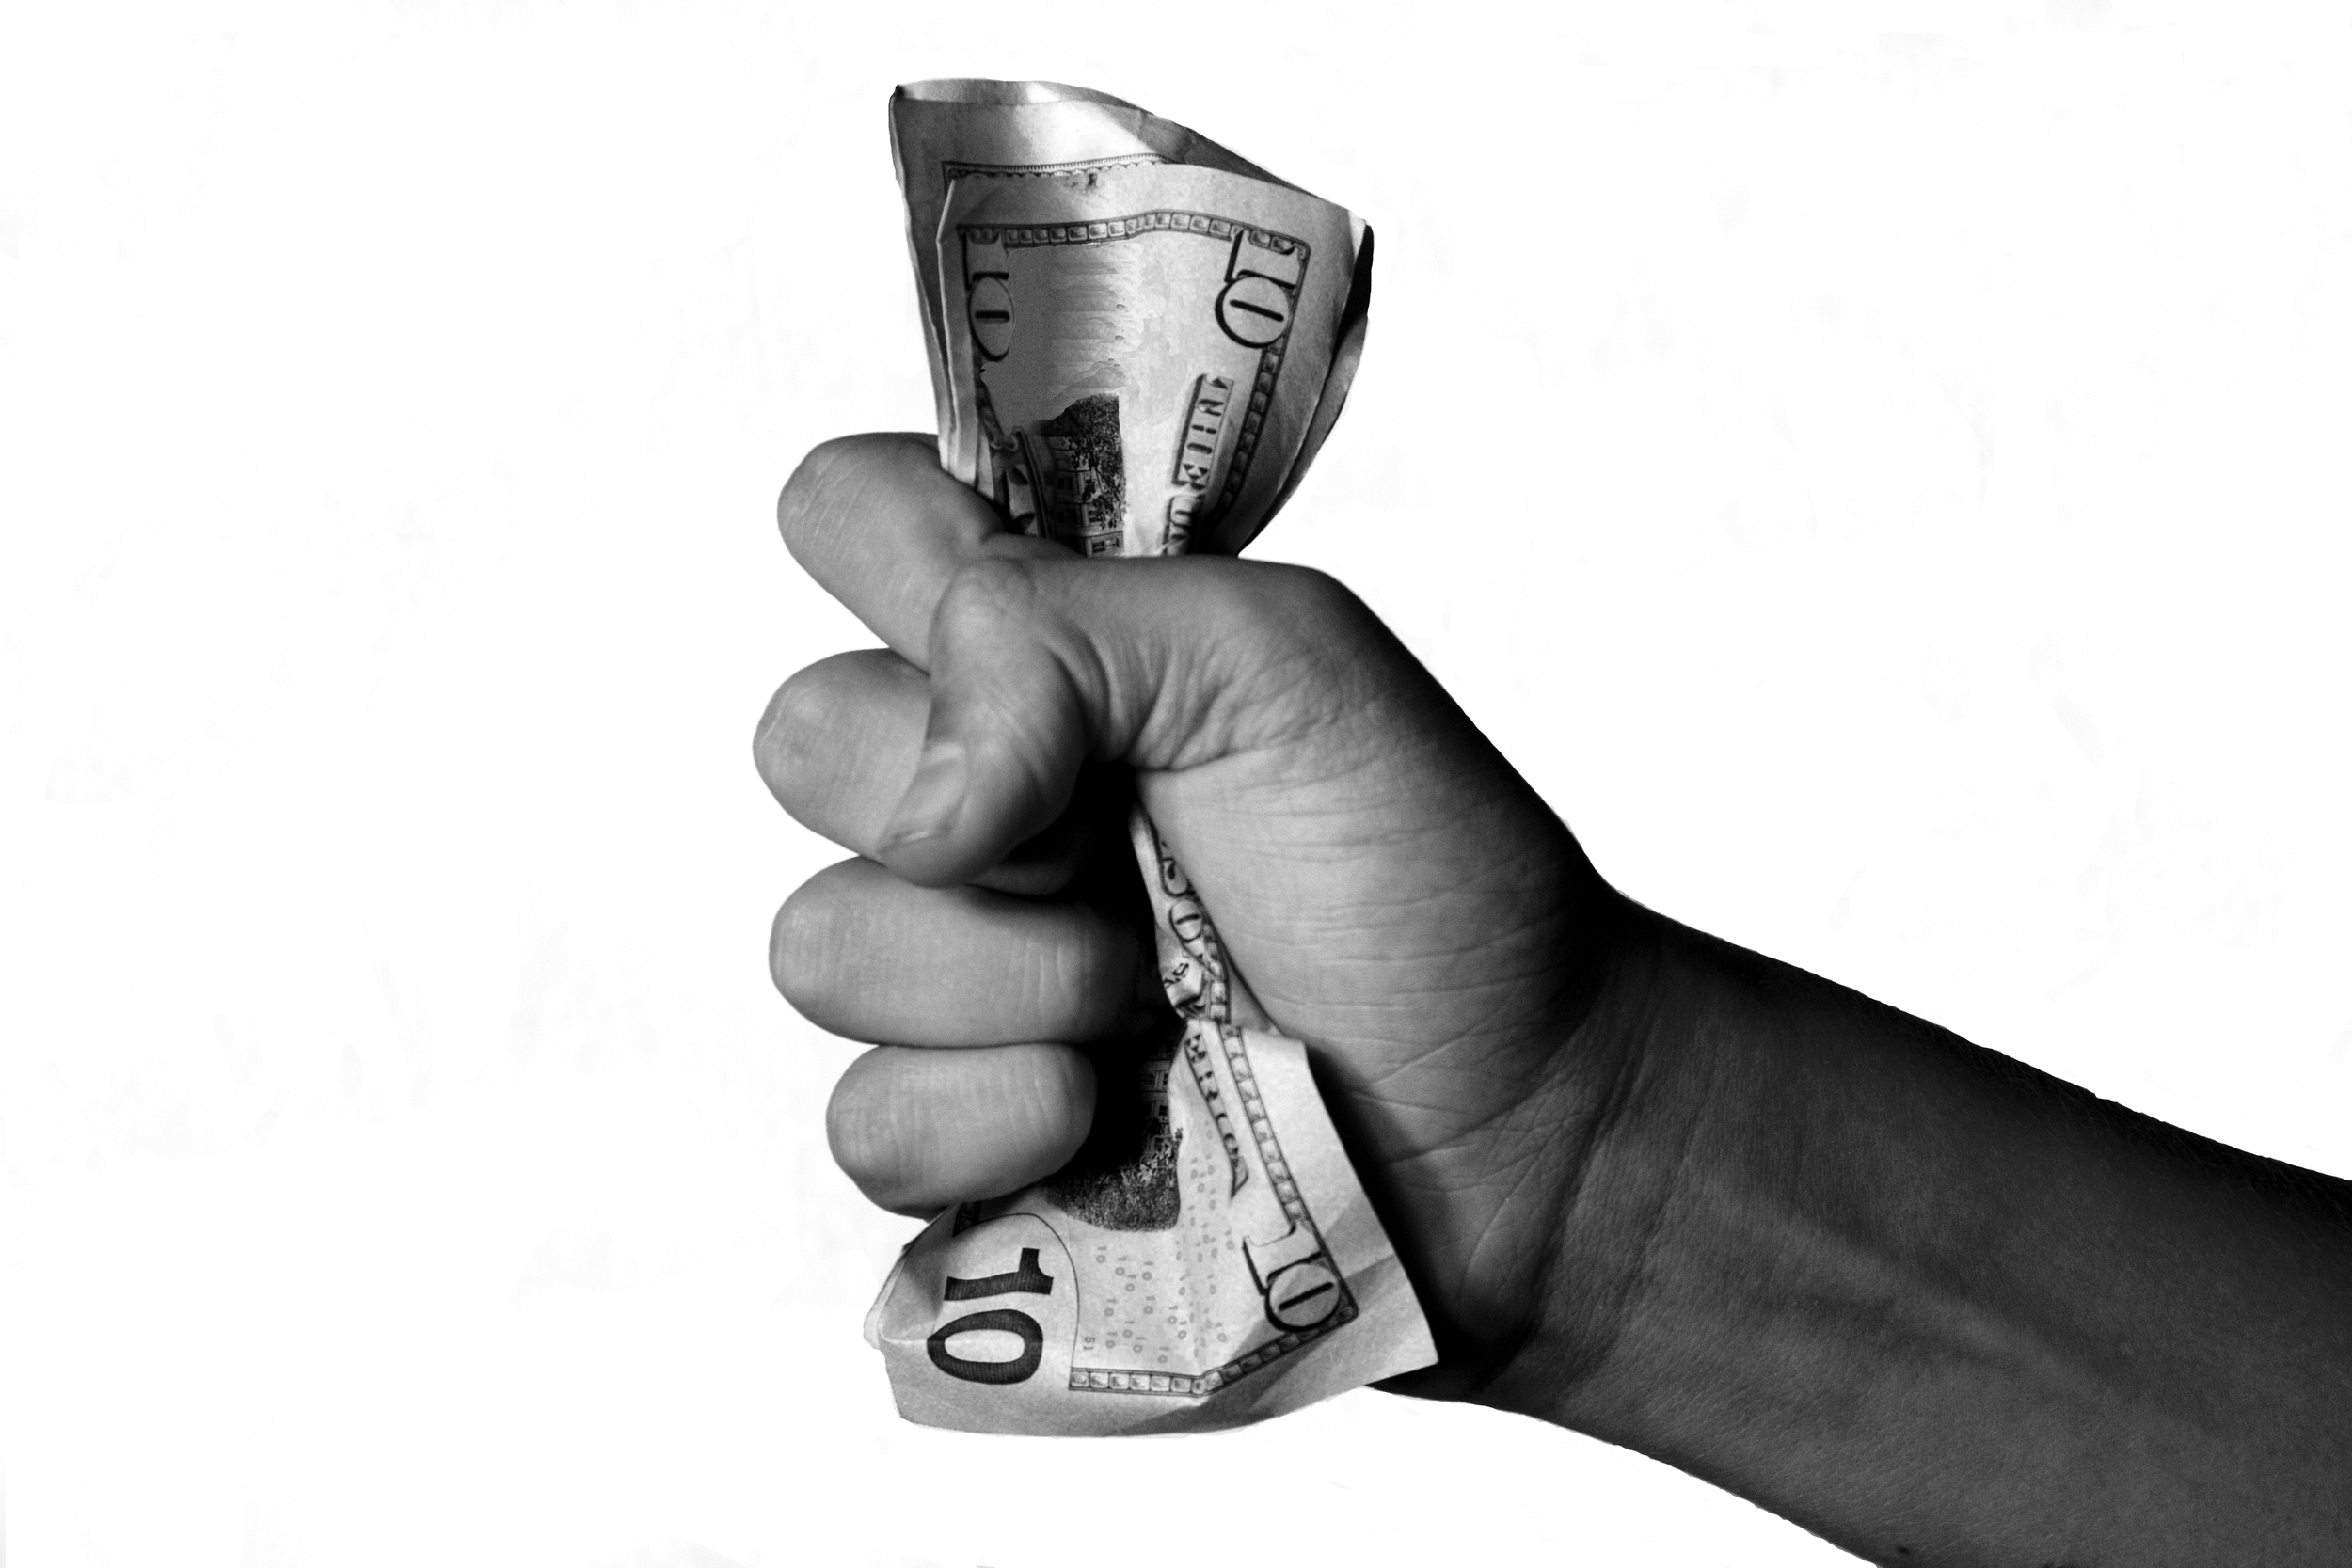 """"""" Money Crush (105/365) """"  by   Rocky Lubbers   is licensed under   CC BY 2.0 ."""